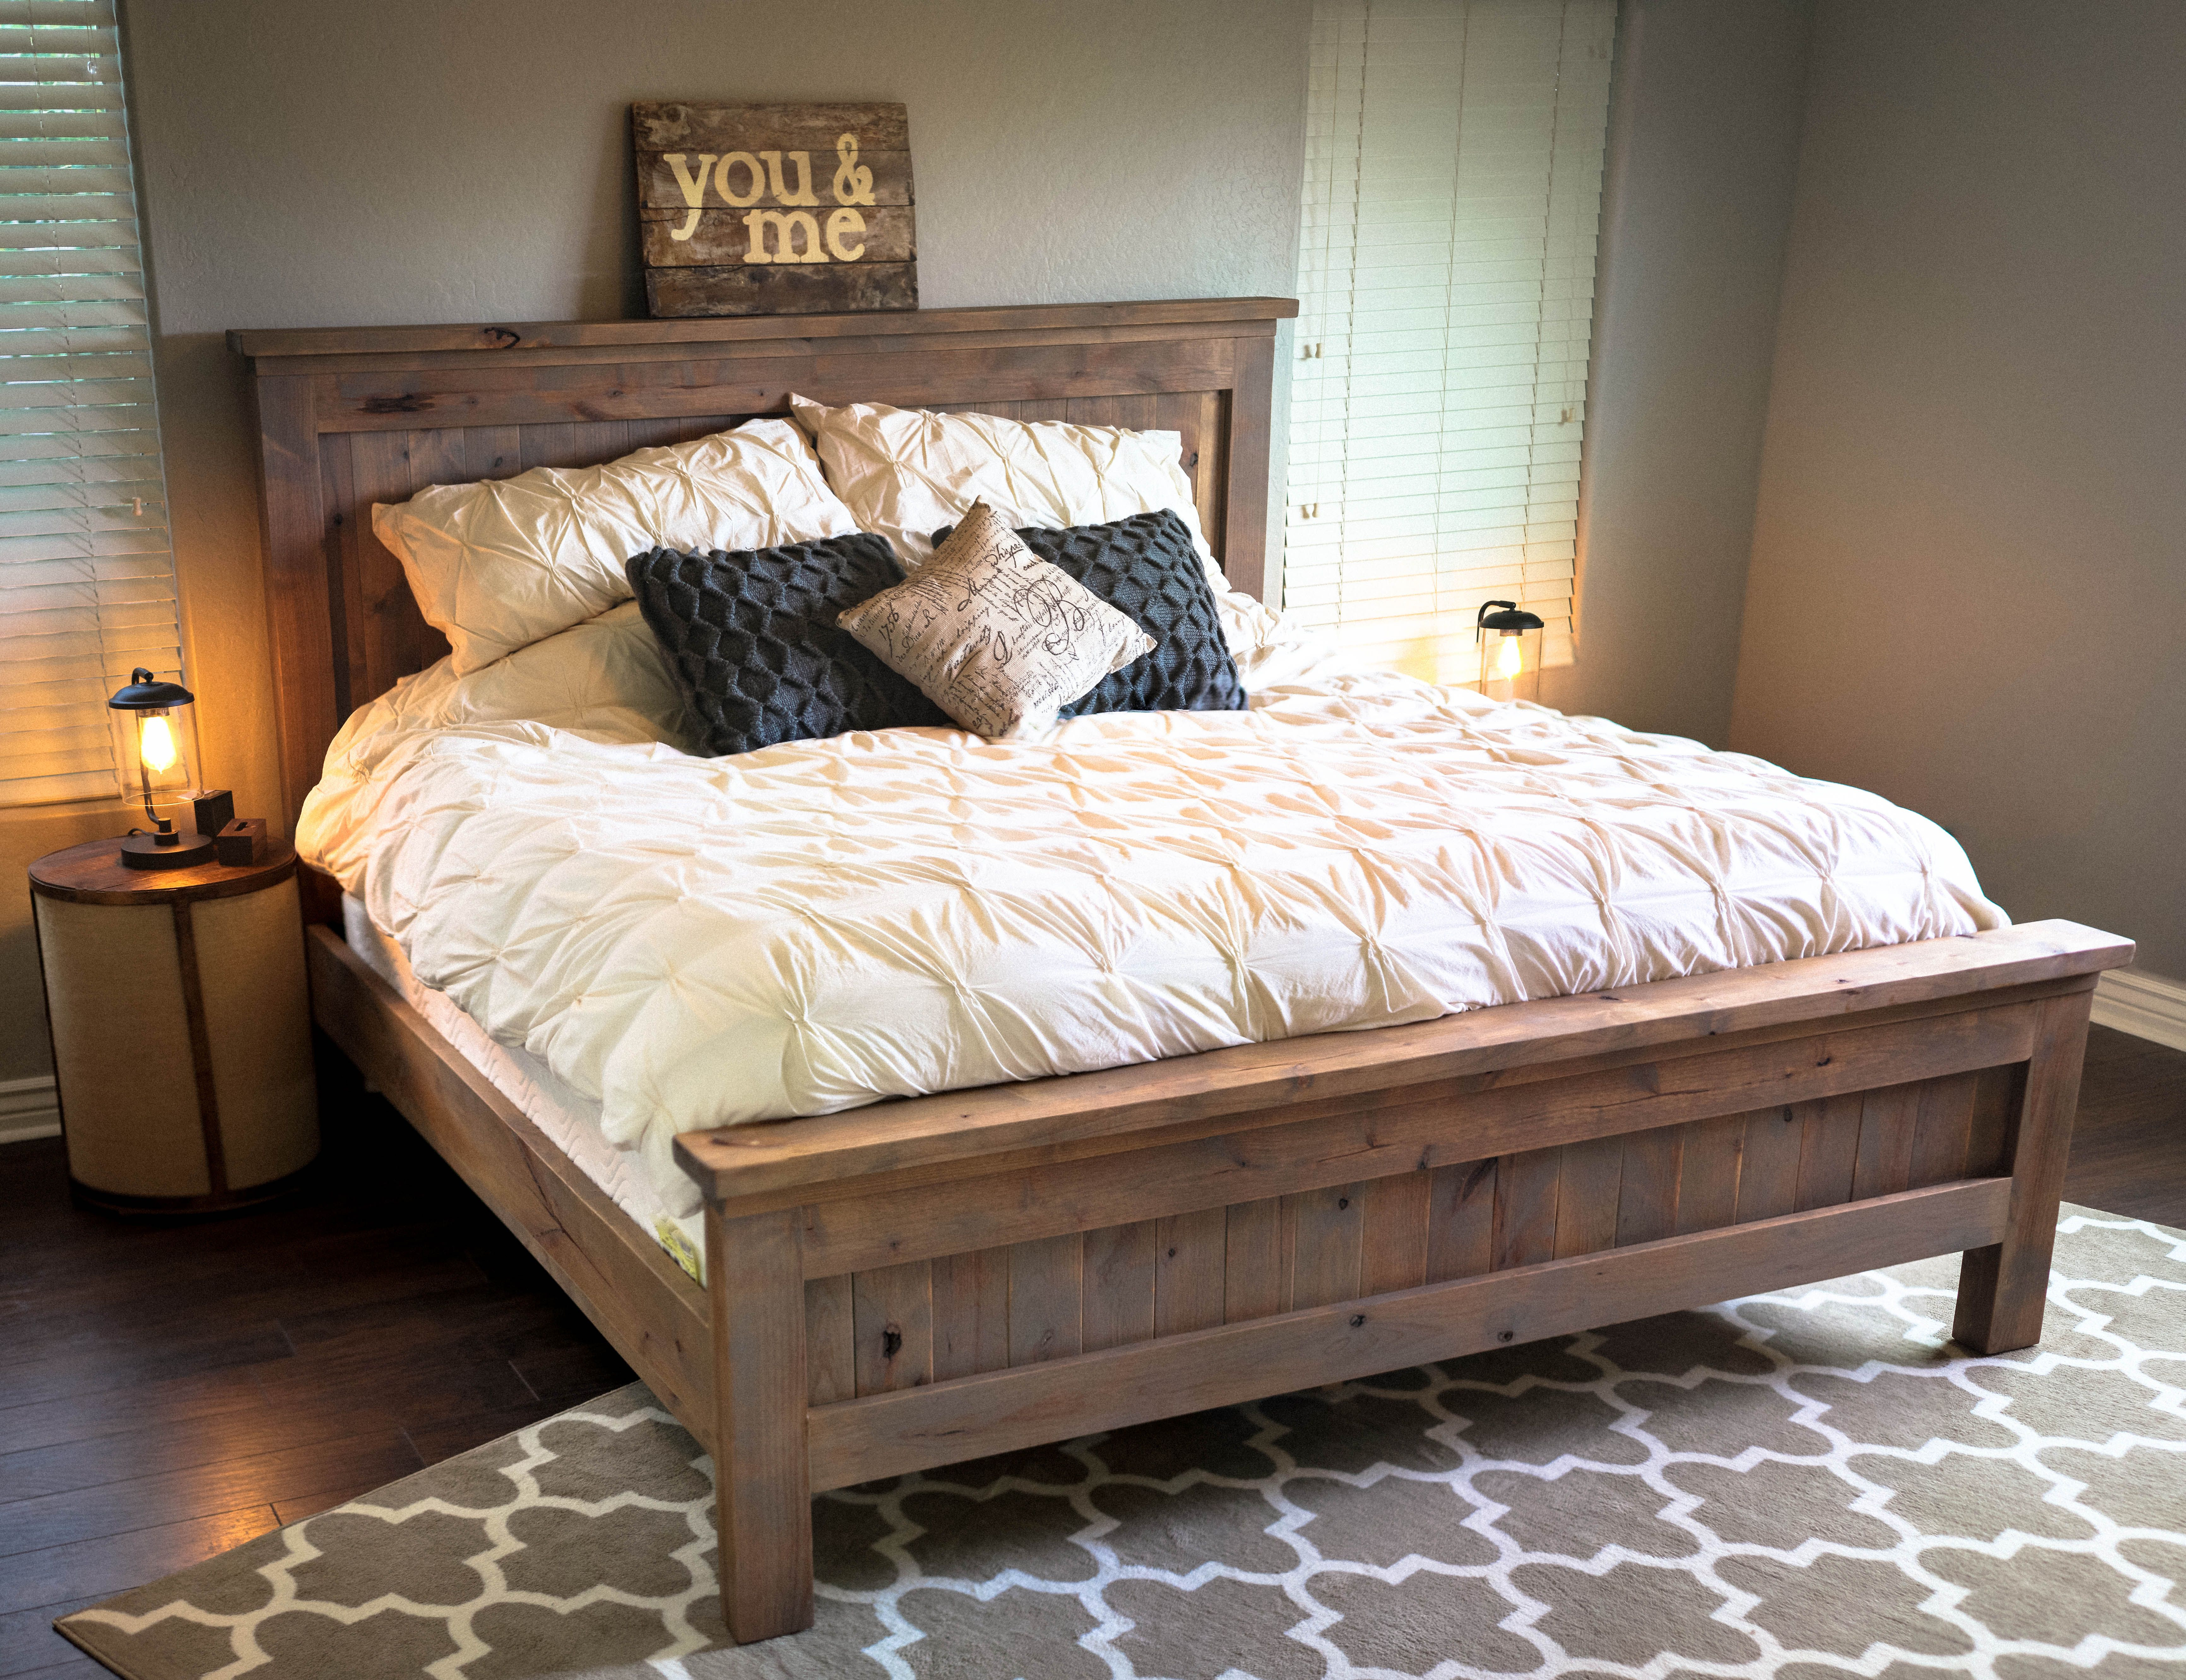 Best ideas about DIY California King Bed Frame . Save or Pin Farmhouse King Bed knotty alder and grey stain Now.